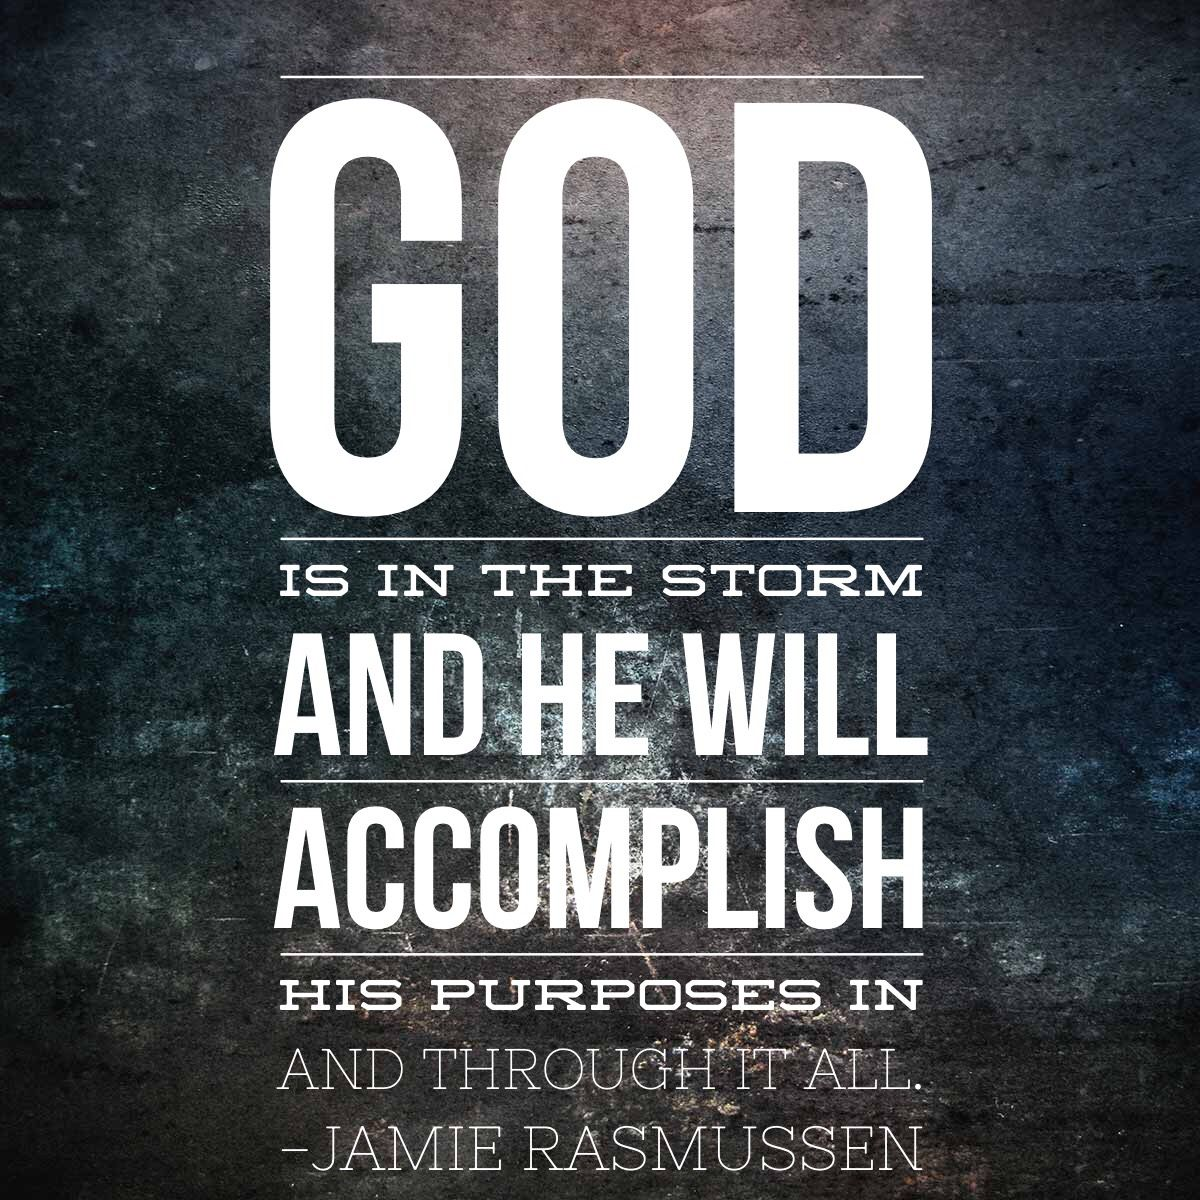 God is in the storm and He will accomplish His purpose in